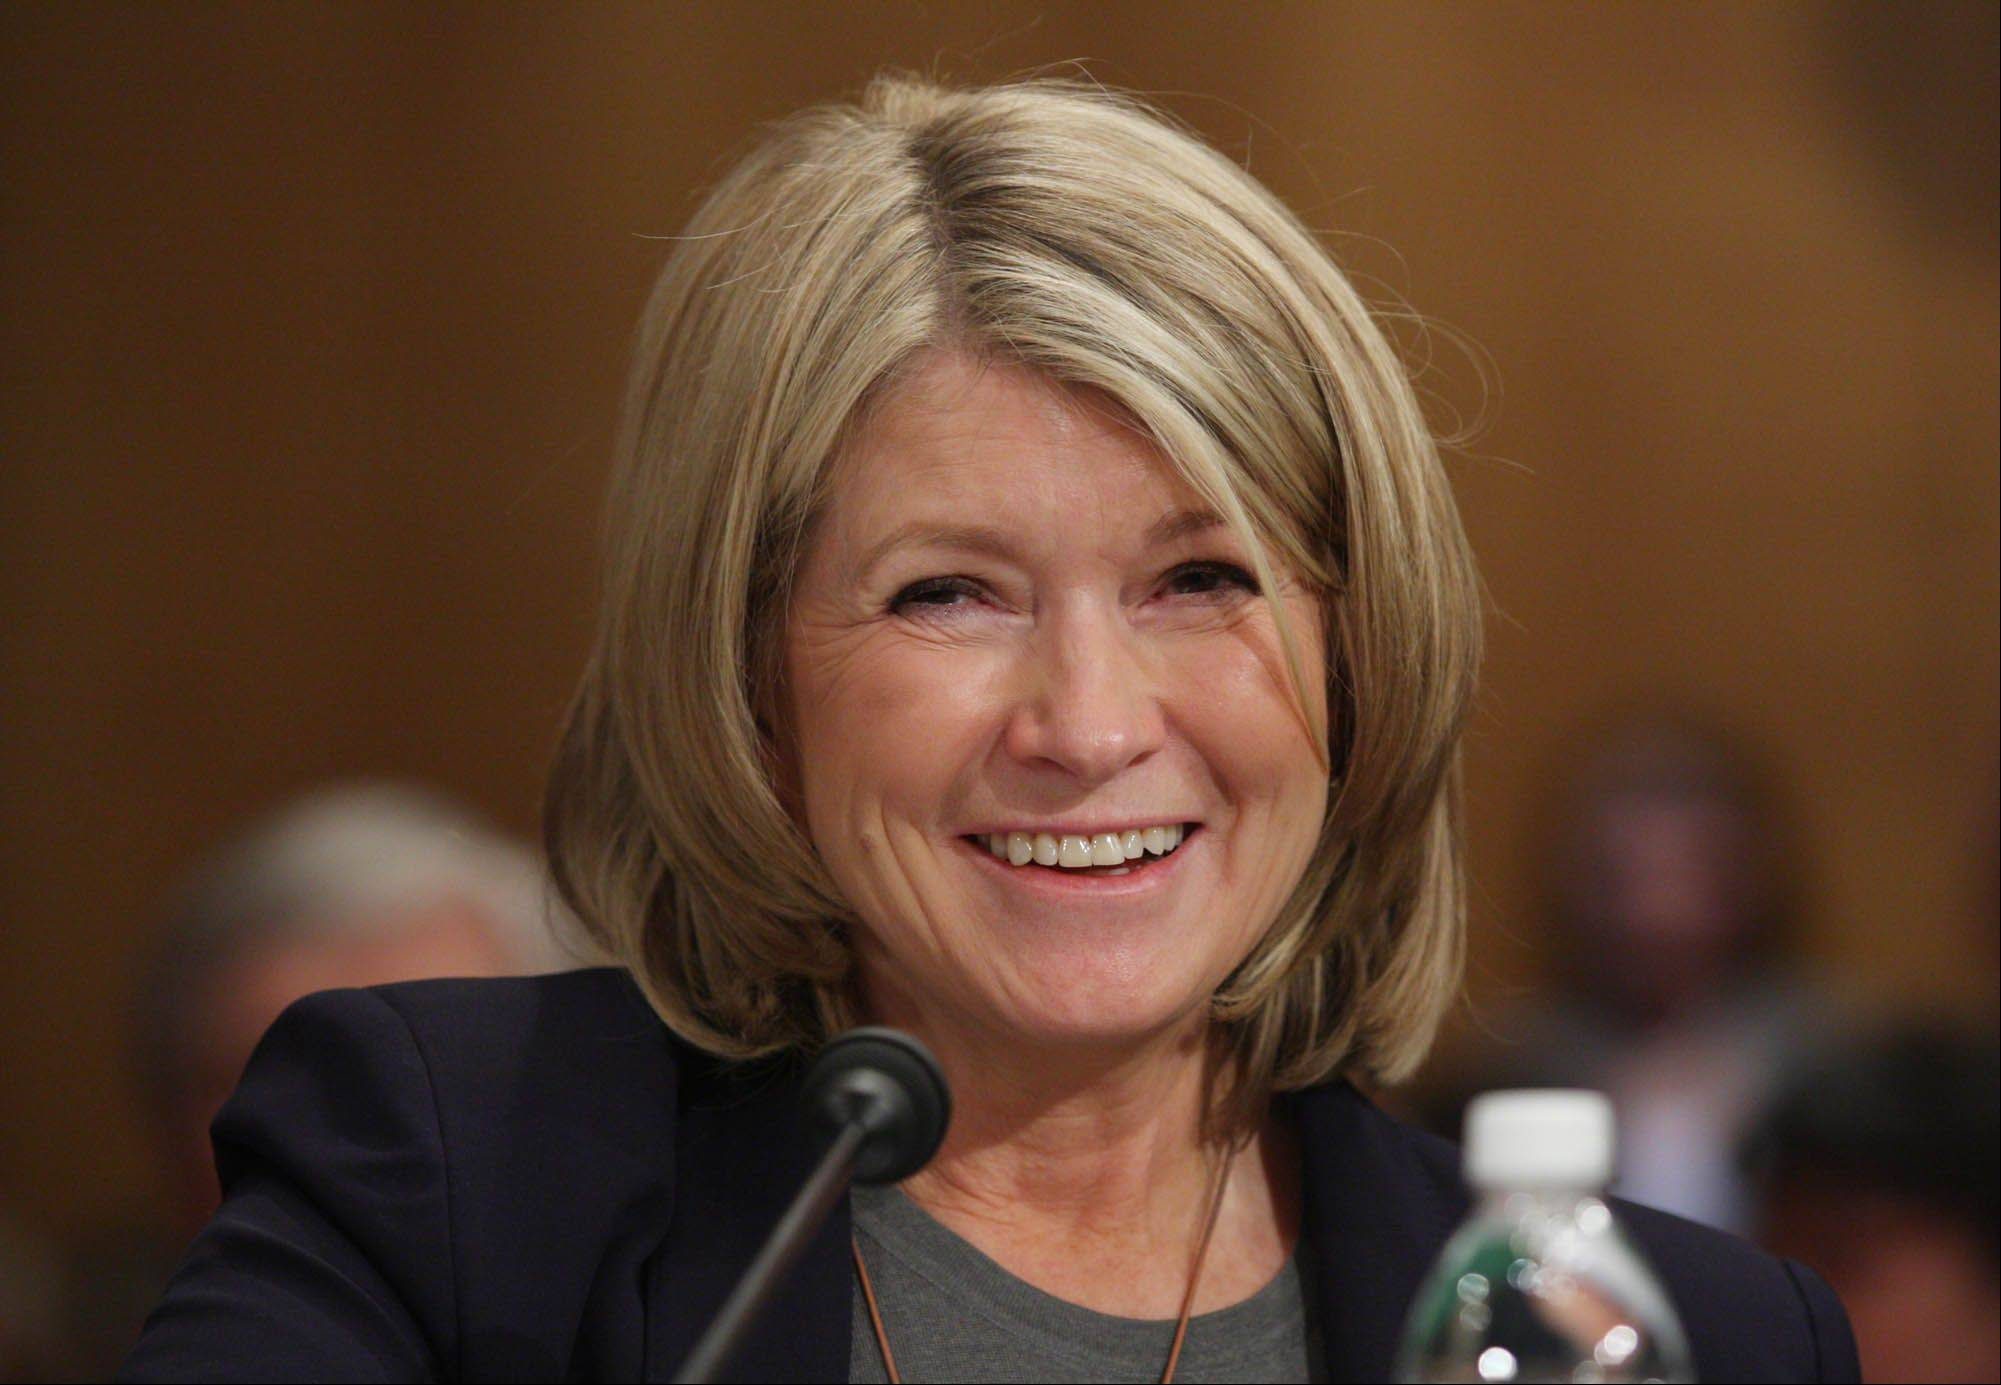 Martha Stewart Living Omnimedia Inc. changed the compensation to $1.8 million for Martha Stewart, its 71-year-old chairman, as part of an option in a July 2012 agreement that extended her employment until 2017, according to a filing Wednesday.